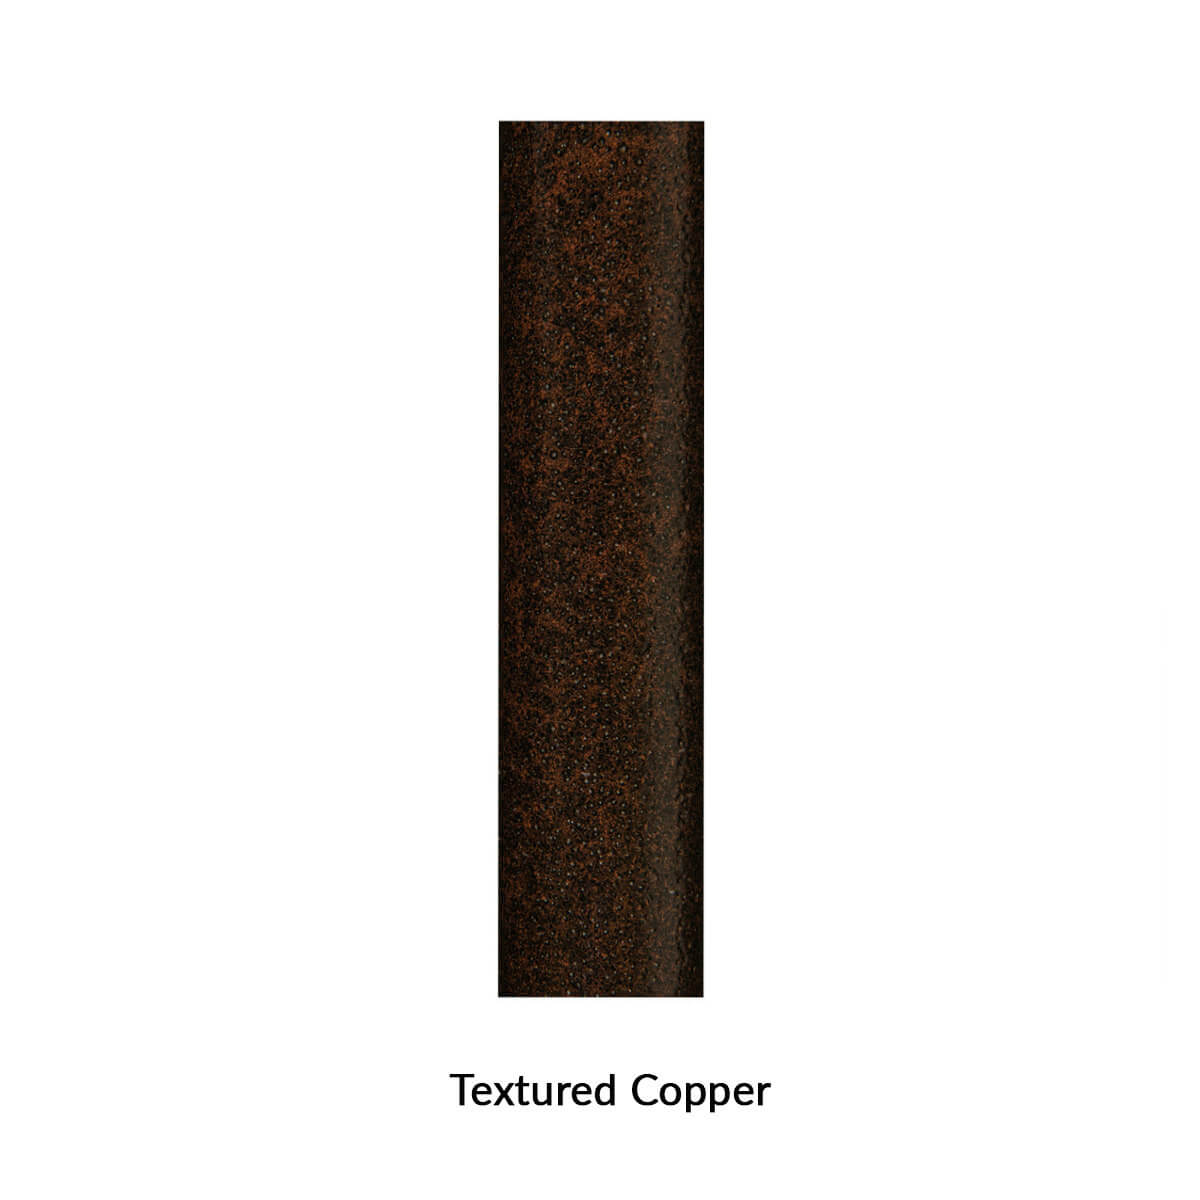 textured-copper.jpg